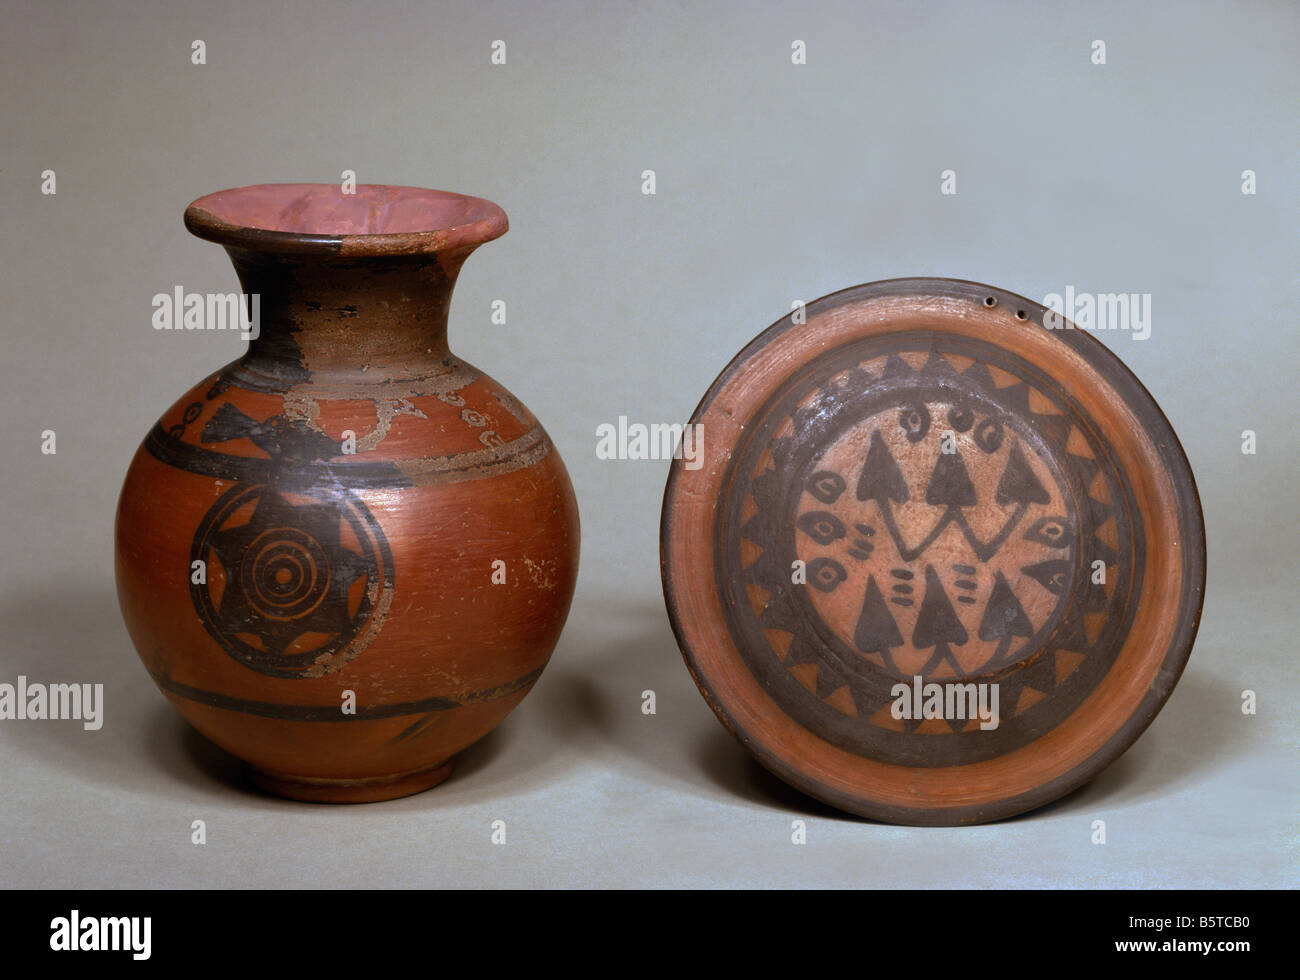 Pot with star design and lid from the Indus Valley civilisation National Museum of New Delhi ref# h 706 a 419 - Stock Image